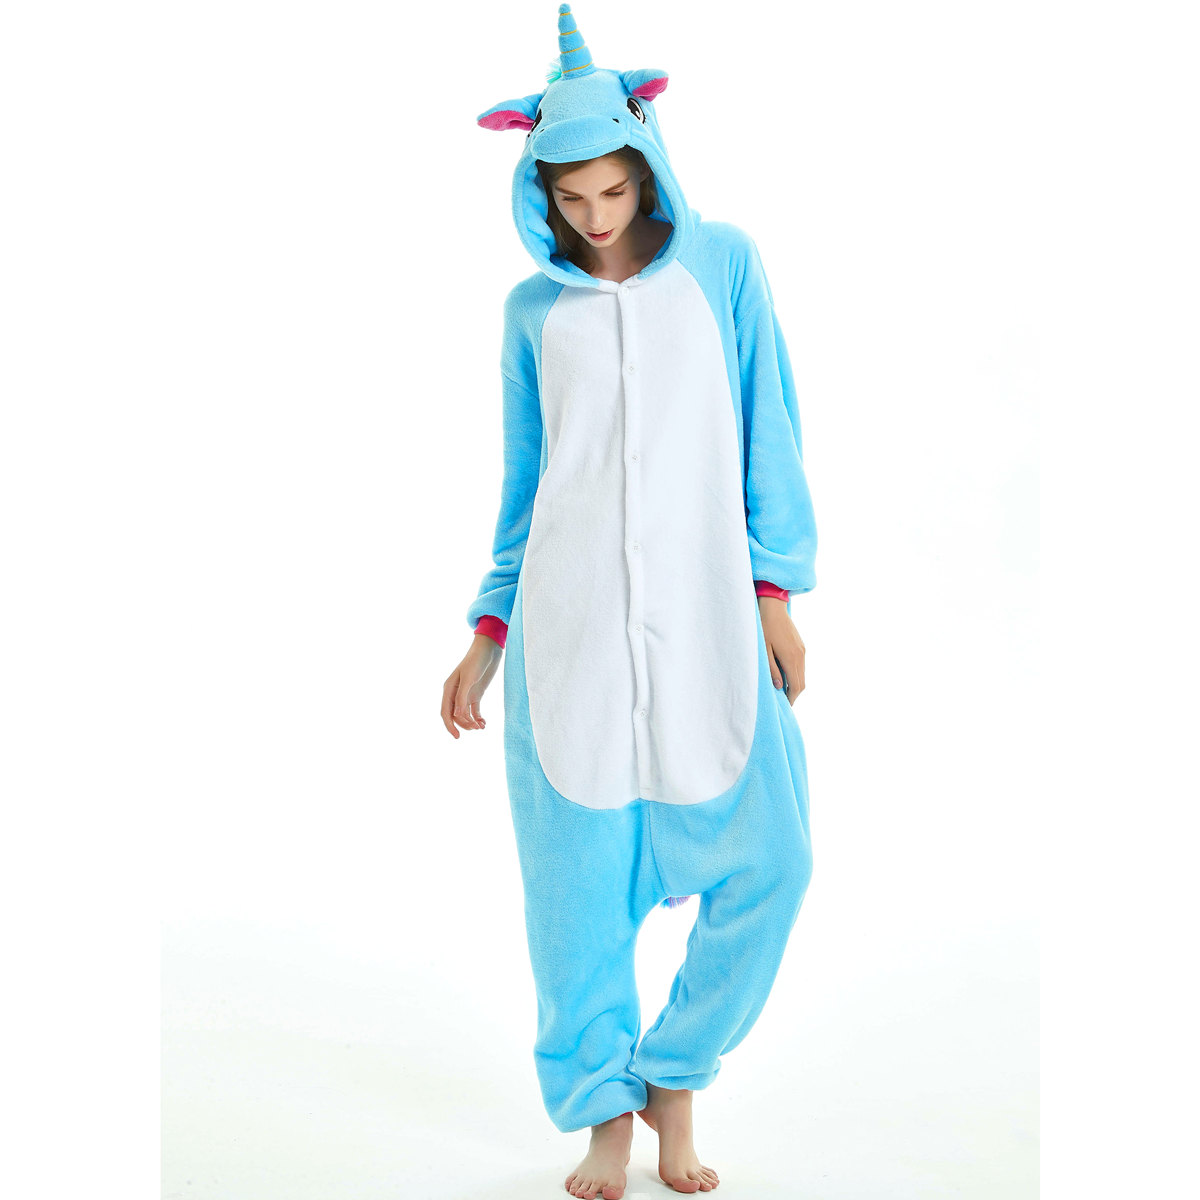 Image 4 - Women Kigurumi Unicorn Pajamas Sets Flannel Cute Animal Pajamas kids Women Winter unicornio Nightie Pyjamas Sleepwear Homewear-in Pajama Sets from Underwear & Sleepwears